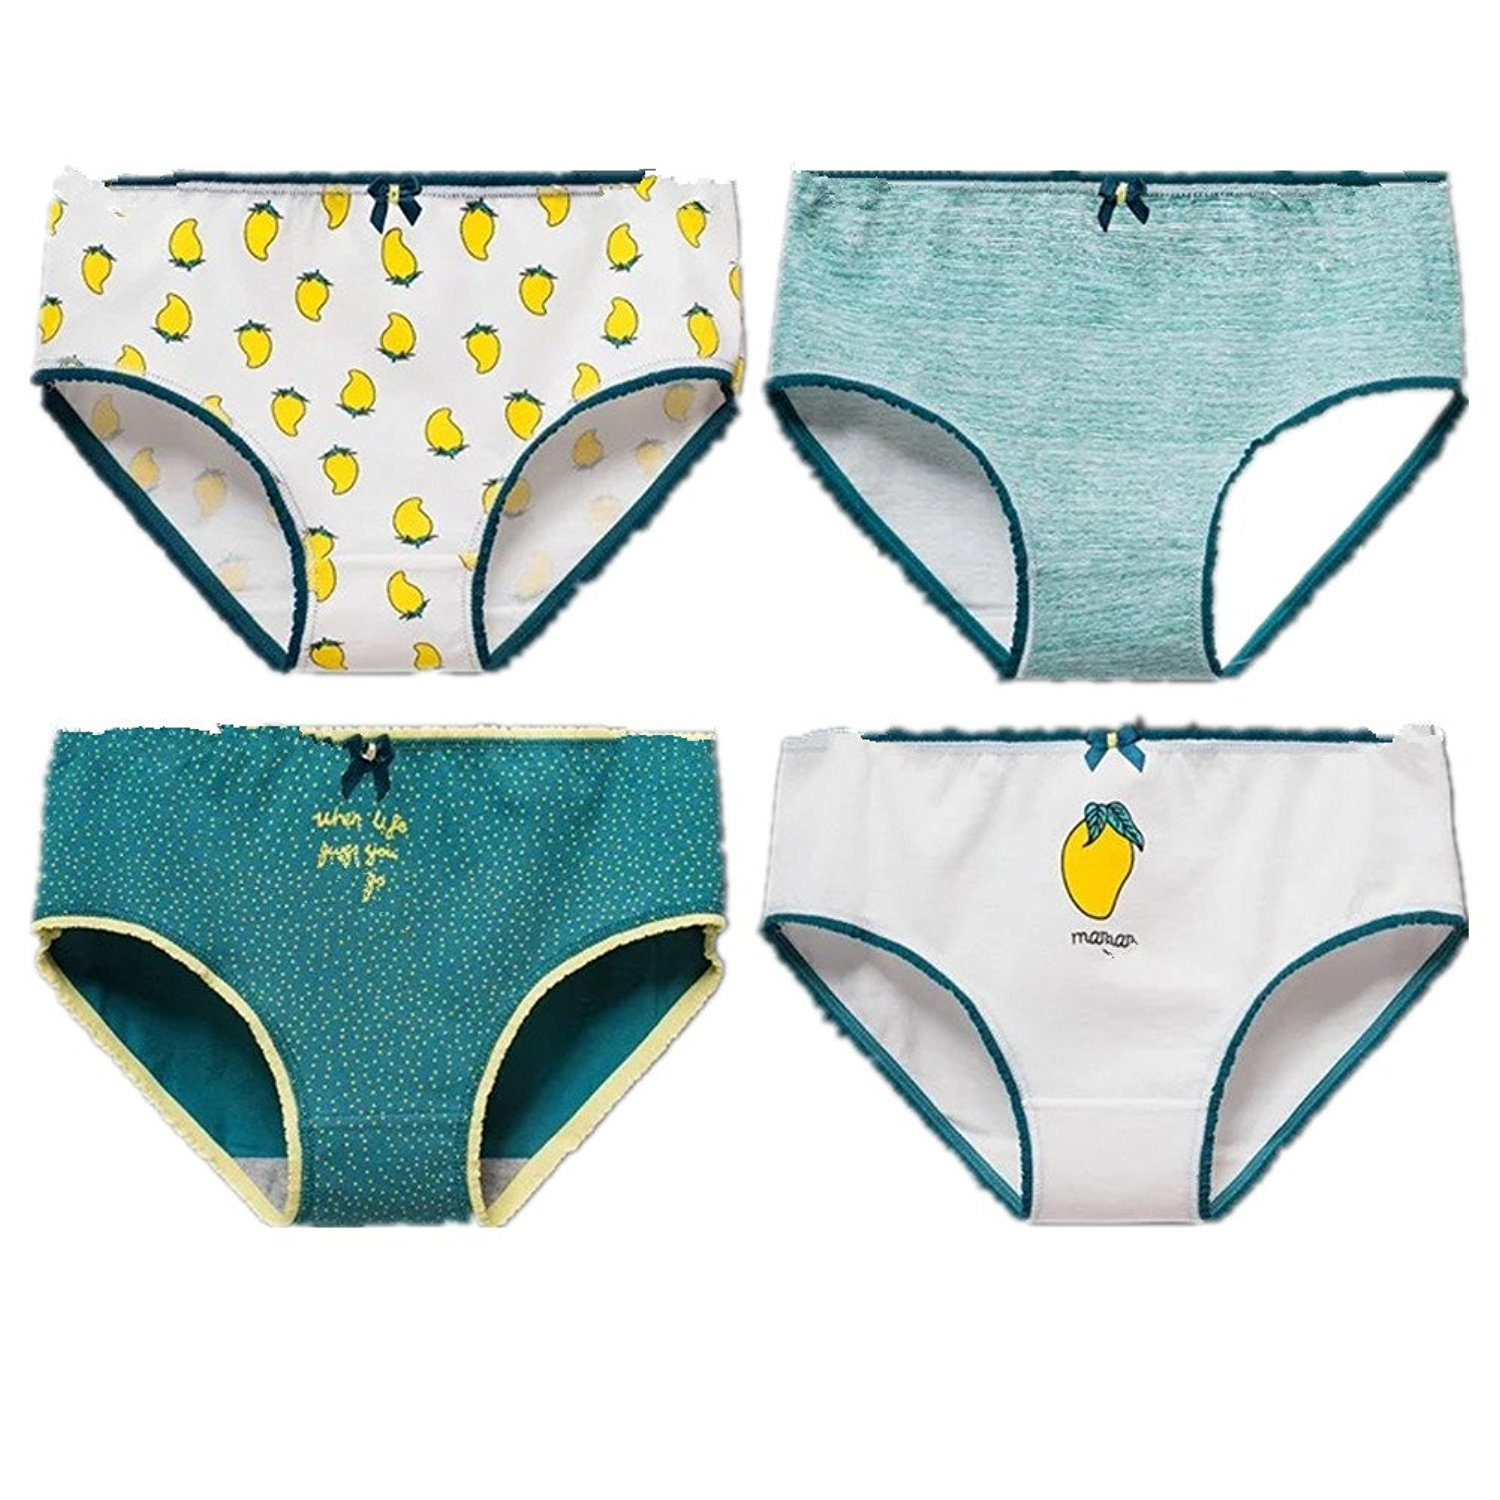 DVANIS 4-Packs Girls Underwear Hipster Knickers Briefs Print Mango Comfort Cotton